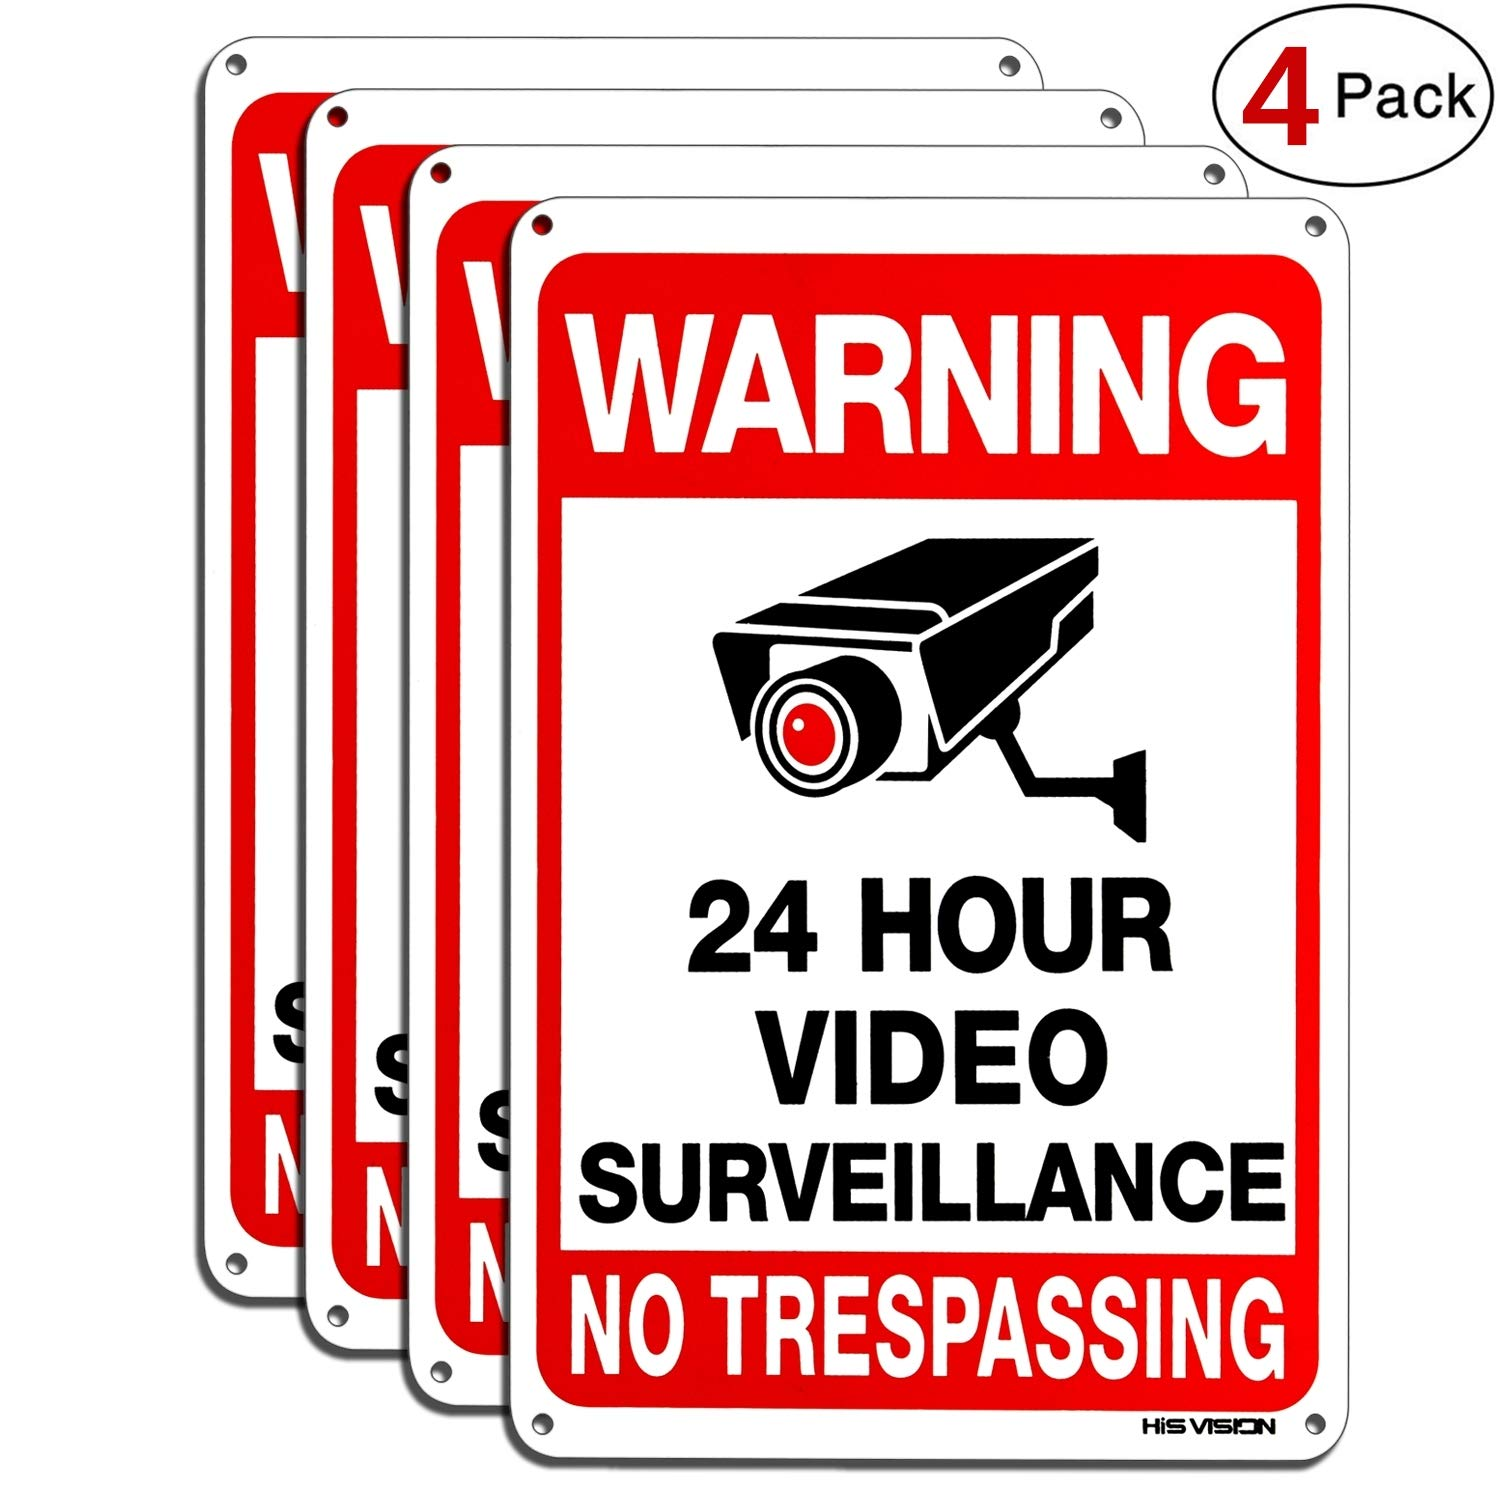 HISVISION Video Surveillance Sign 4-Pack, No Trespassing Metal Reflective Warning Sign,UV Protected & Waterproof, 10''x 7'' 0.40 Aluminum Indoor Or Outdoor Use for Home Business CCTV Security Camera